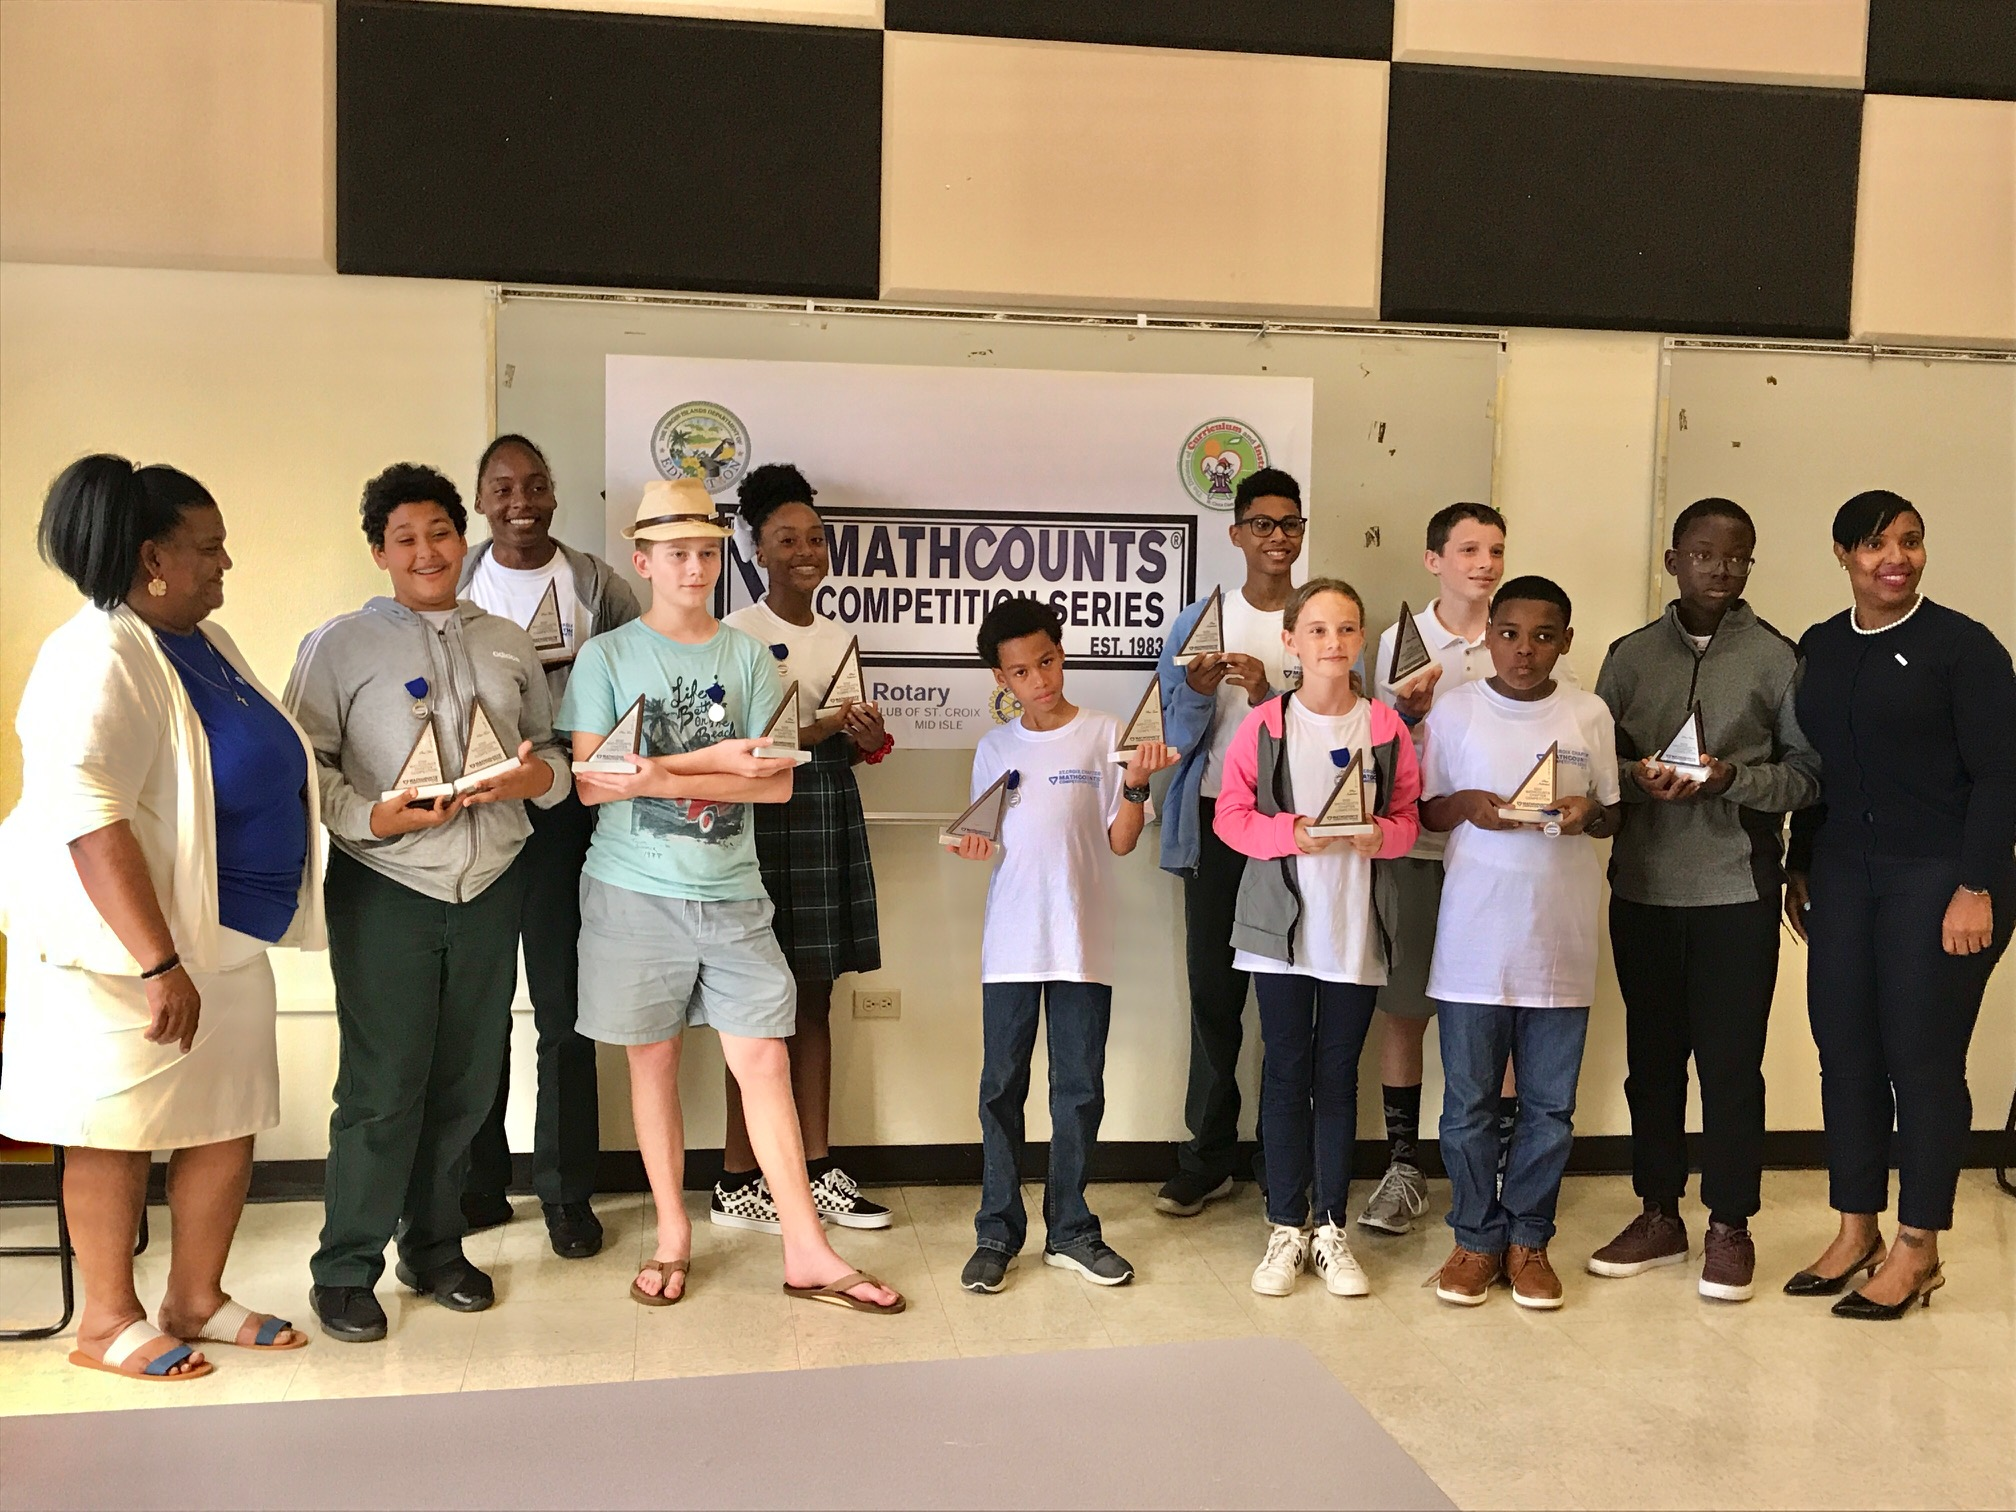 STX MathCounts Top 10 Students with Coordinator & Deputy Commissioner - From left: STX Math Coordinator Juanita Boneque, Samir Boucenna, Zanyja Rodriguez, Andrew Thompson, Kristina Horsford, Keemar Crosky, Jaden Gonzalez, Lauren Jones, Nick Turk, Aundre Dolcar, Michael Atwell, and Deputy Commissioner Carla Bastian. (Source Photo by Elisa McKay)